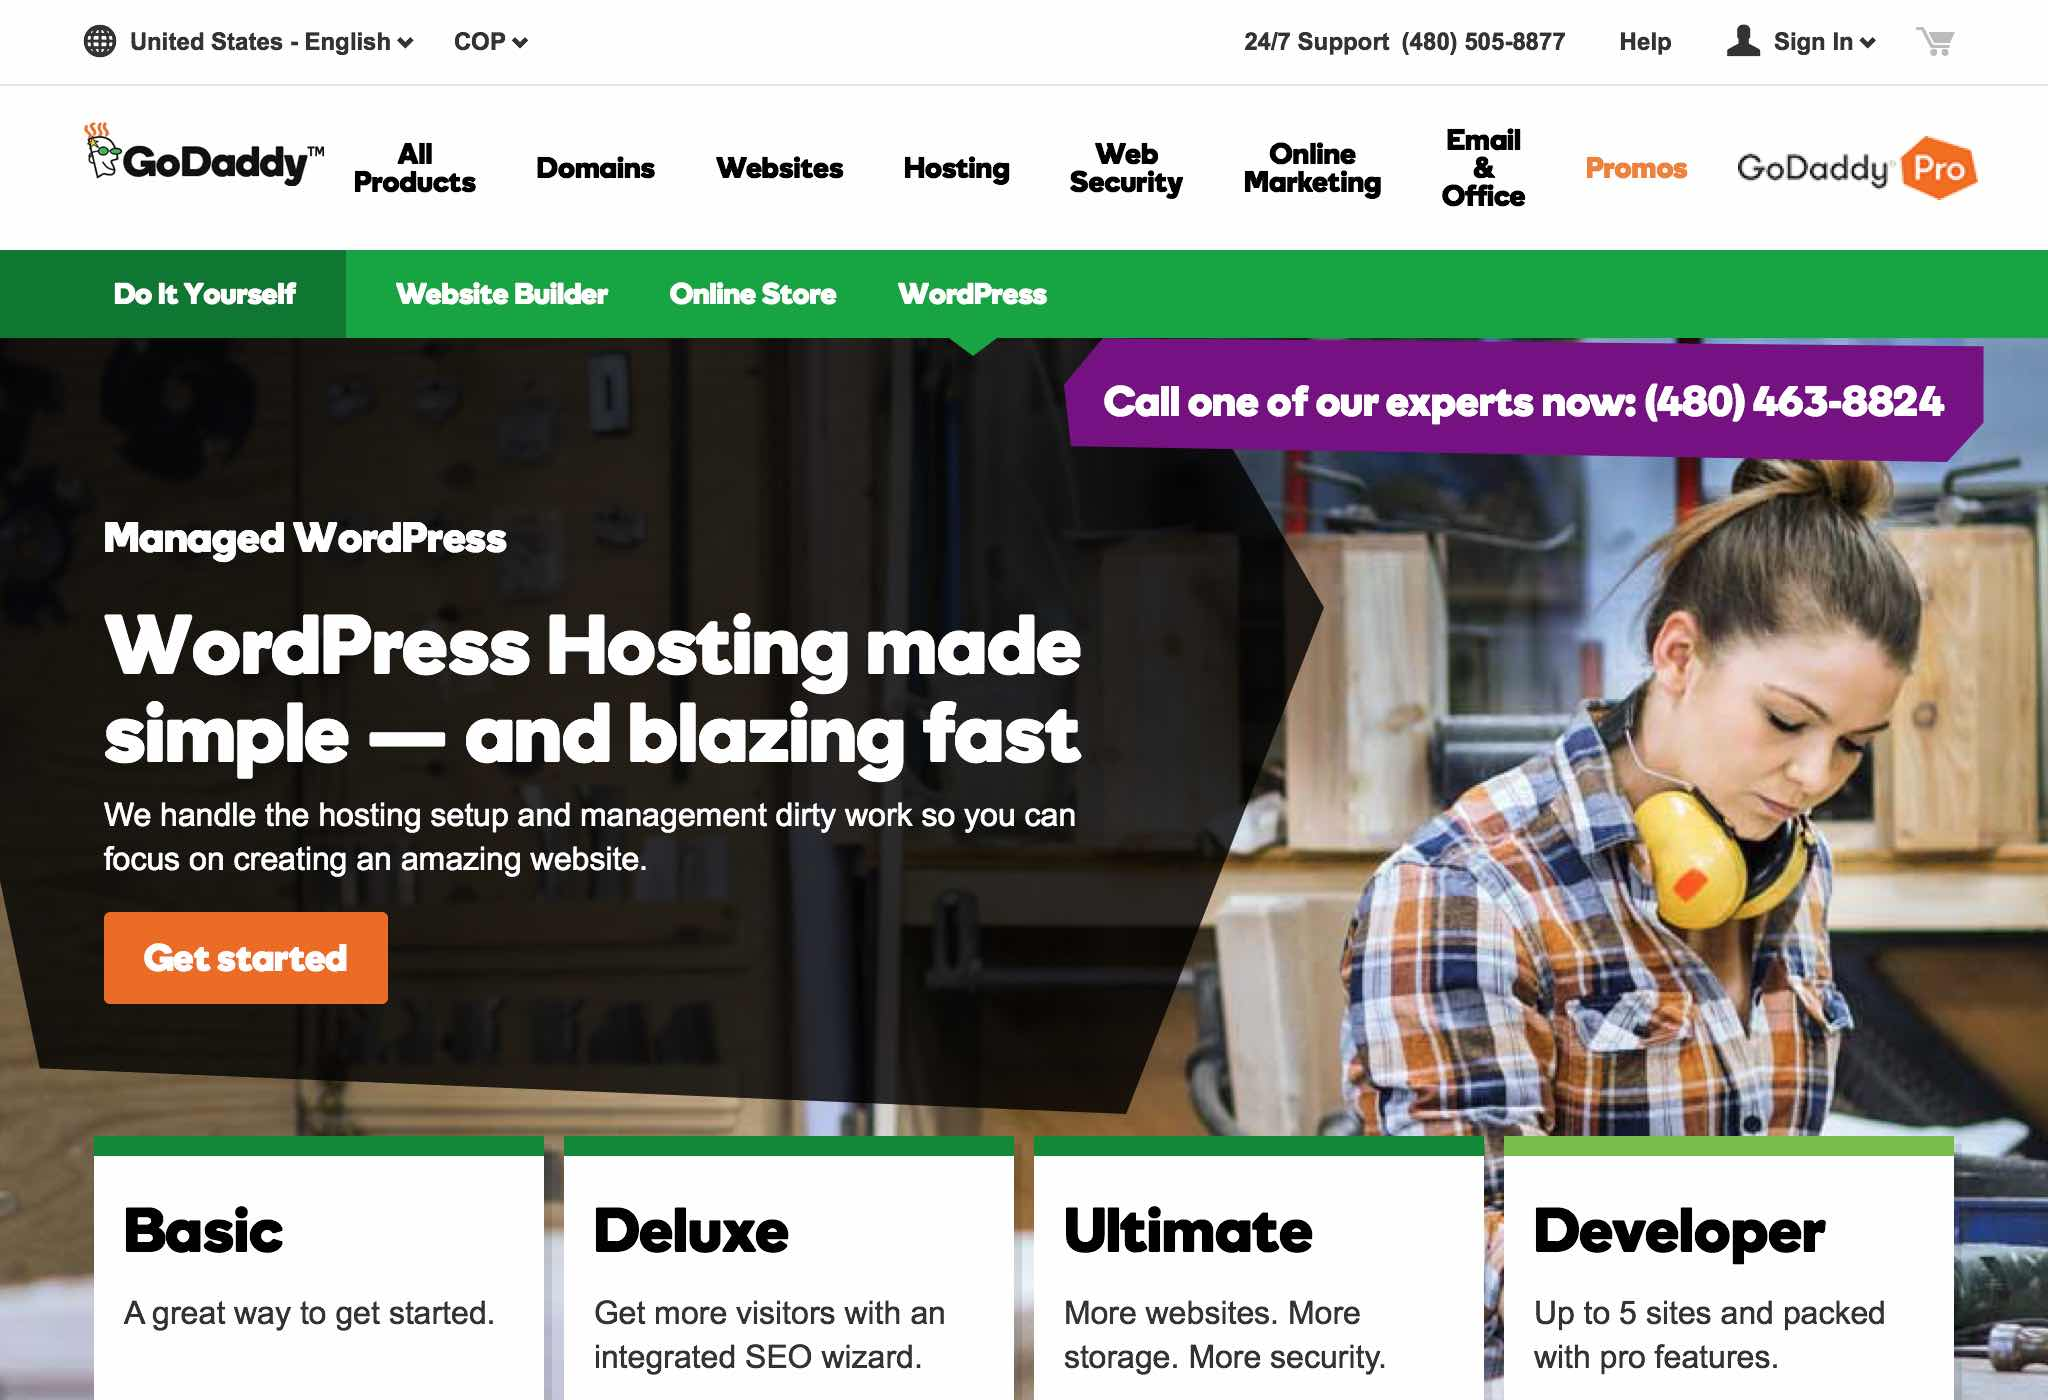 GoDaddy offers managed WordPress hosting at an affordable price, as well as easy installation of your WordPress domain.